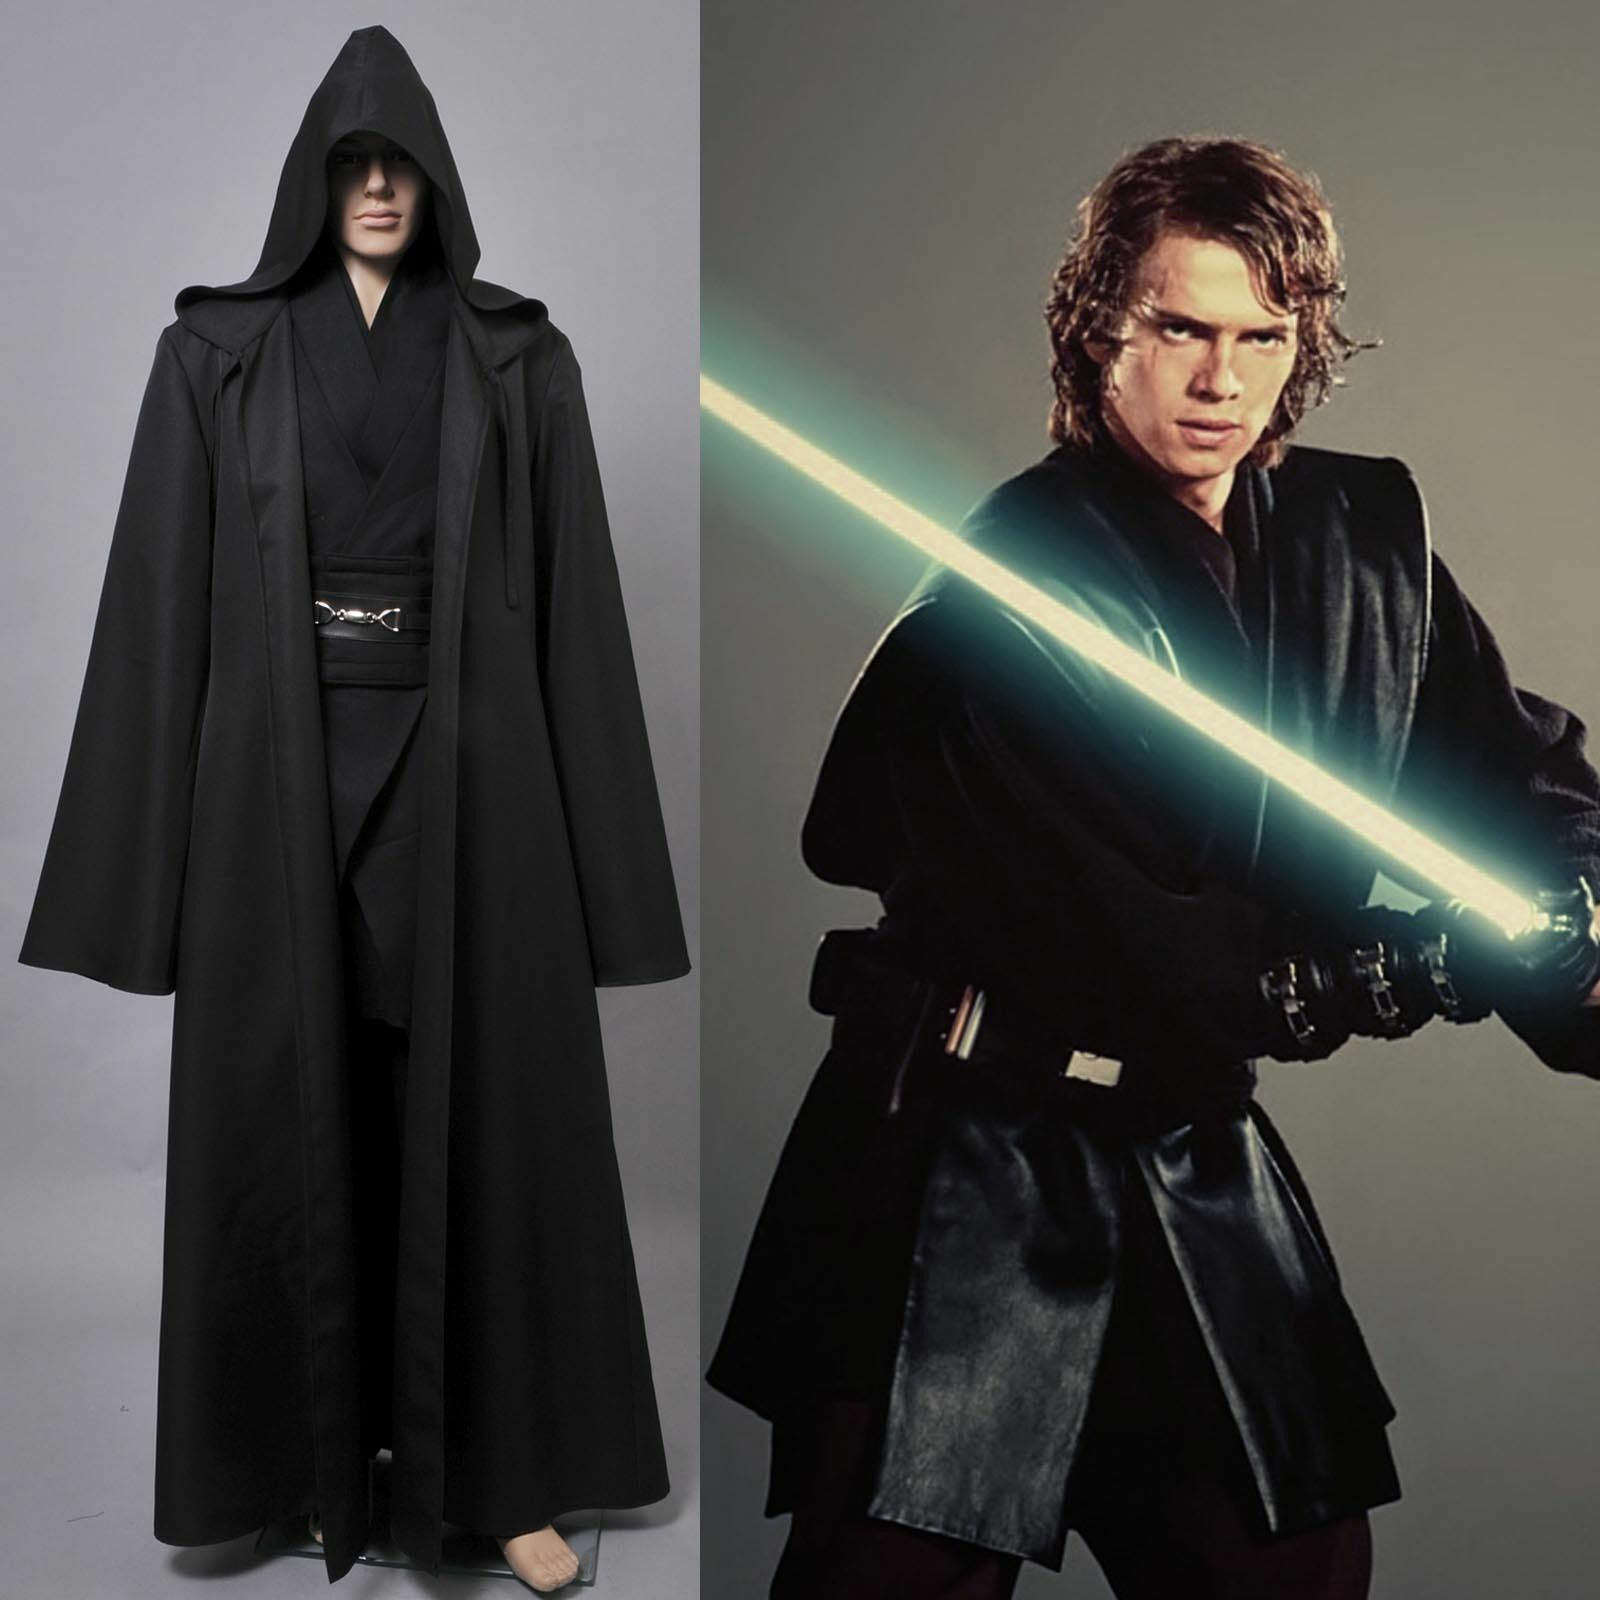 Anakin Skywalker Jedi Star Wars Jedi/sith Anakin Skywalker Halloween Cosplay